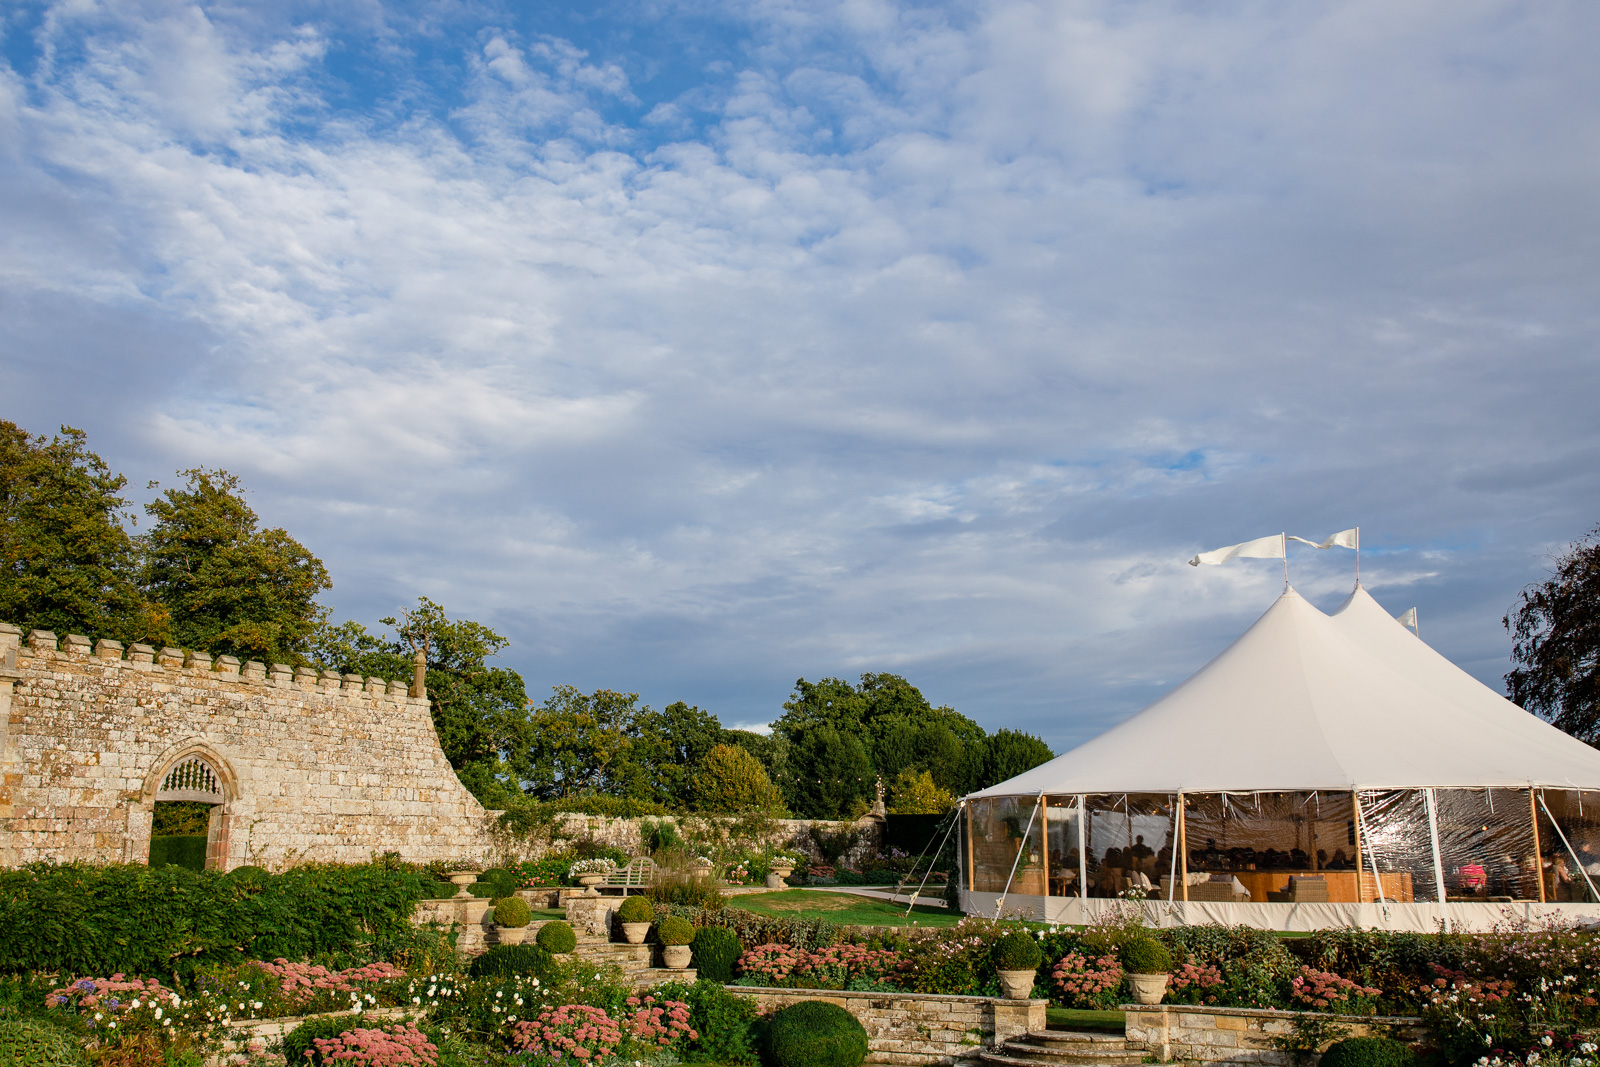 Emily & Ed's PapaKåta Sperry Tent wedding at Buckhurst Park captured by Tony Hart Photography: Sperry Tent exterior in walled garden